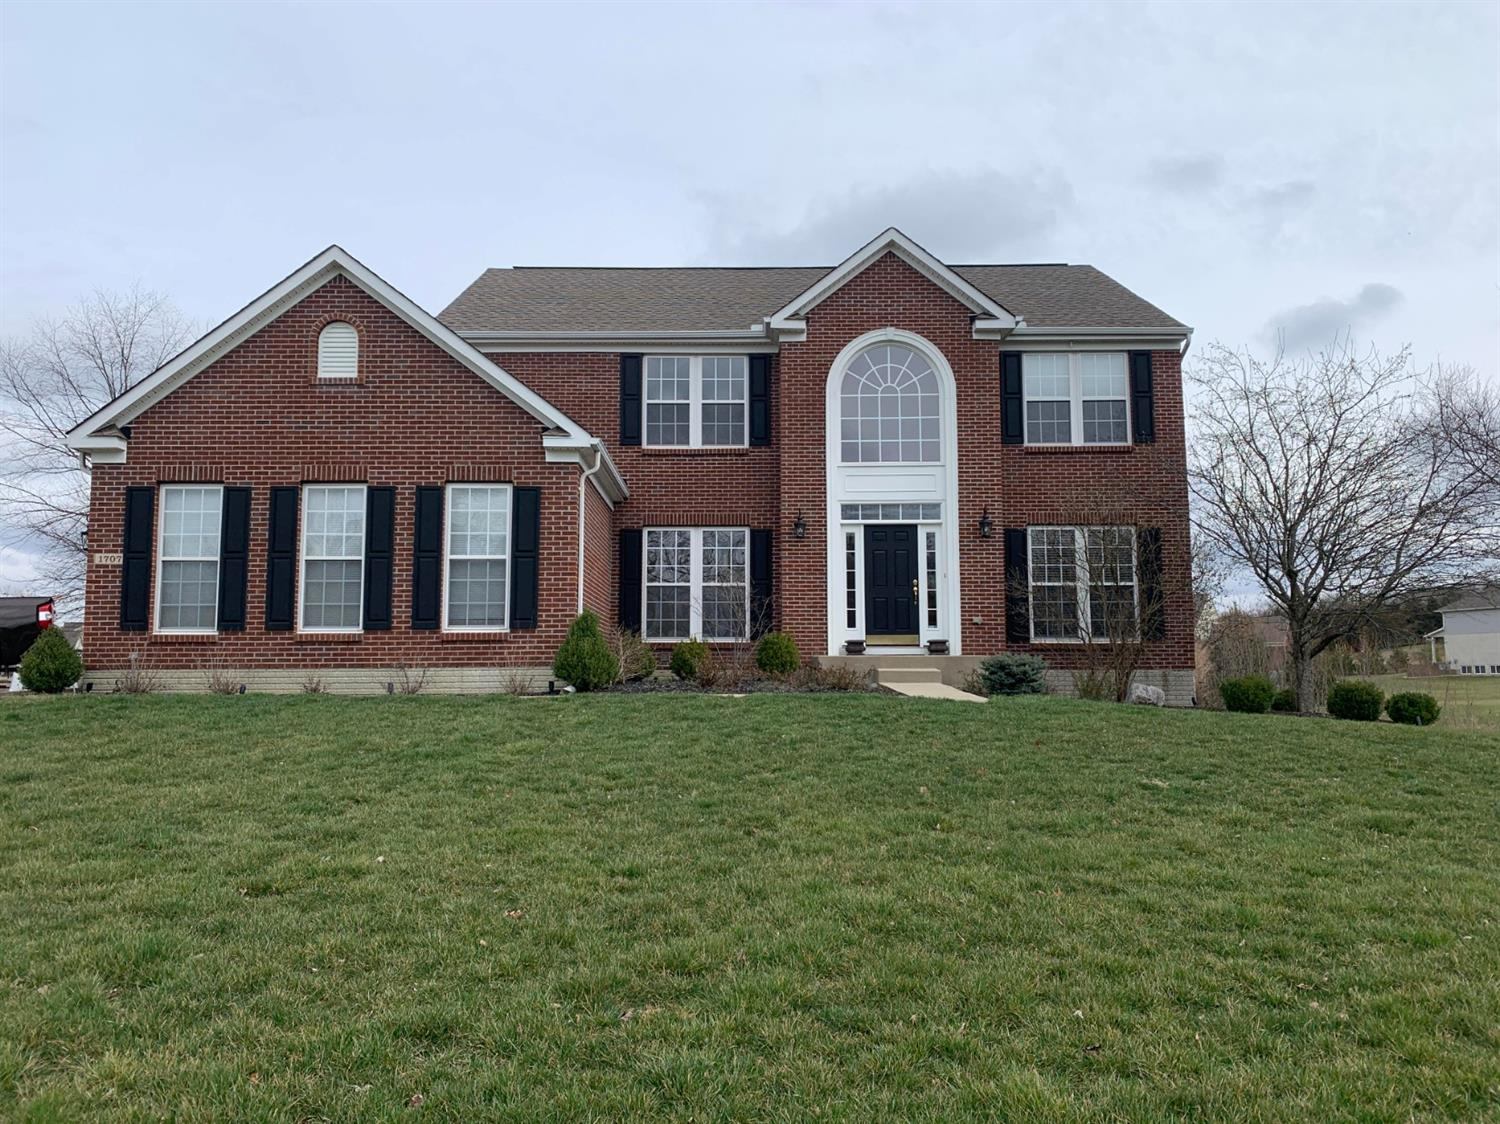 Property for sale at 1707 Rock Rose Court, Turtle Creek Twp,  Ohio 45036